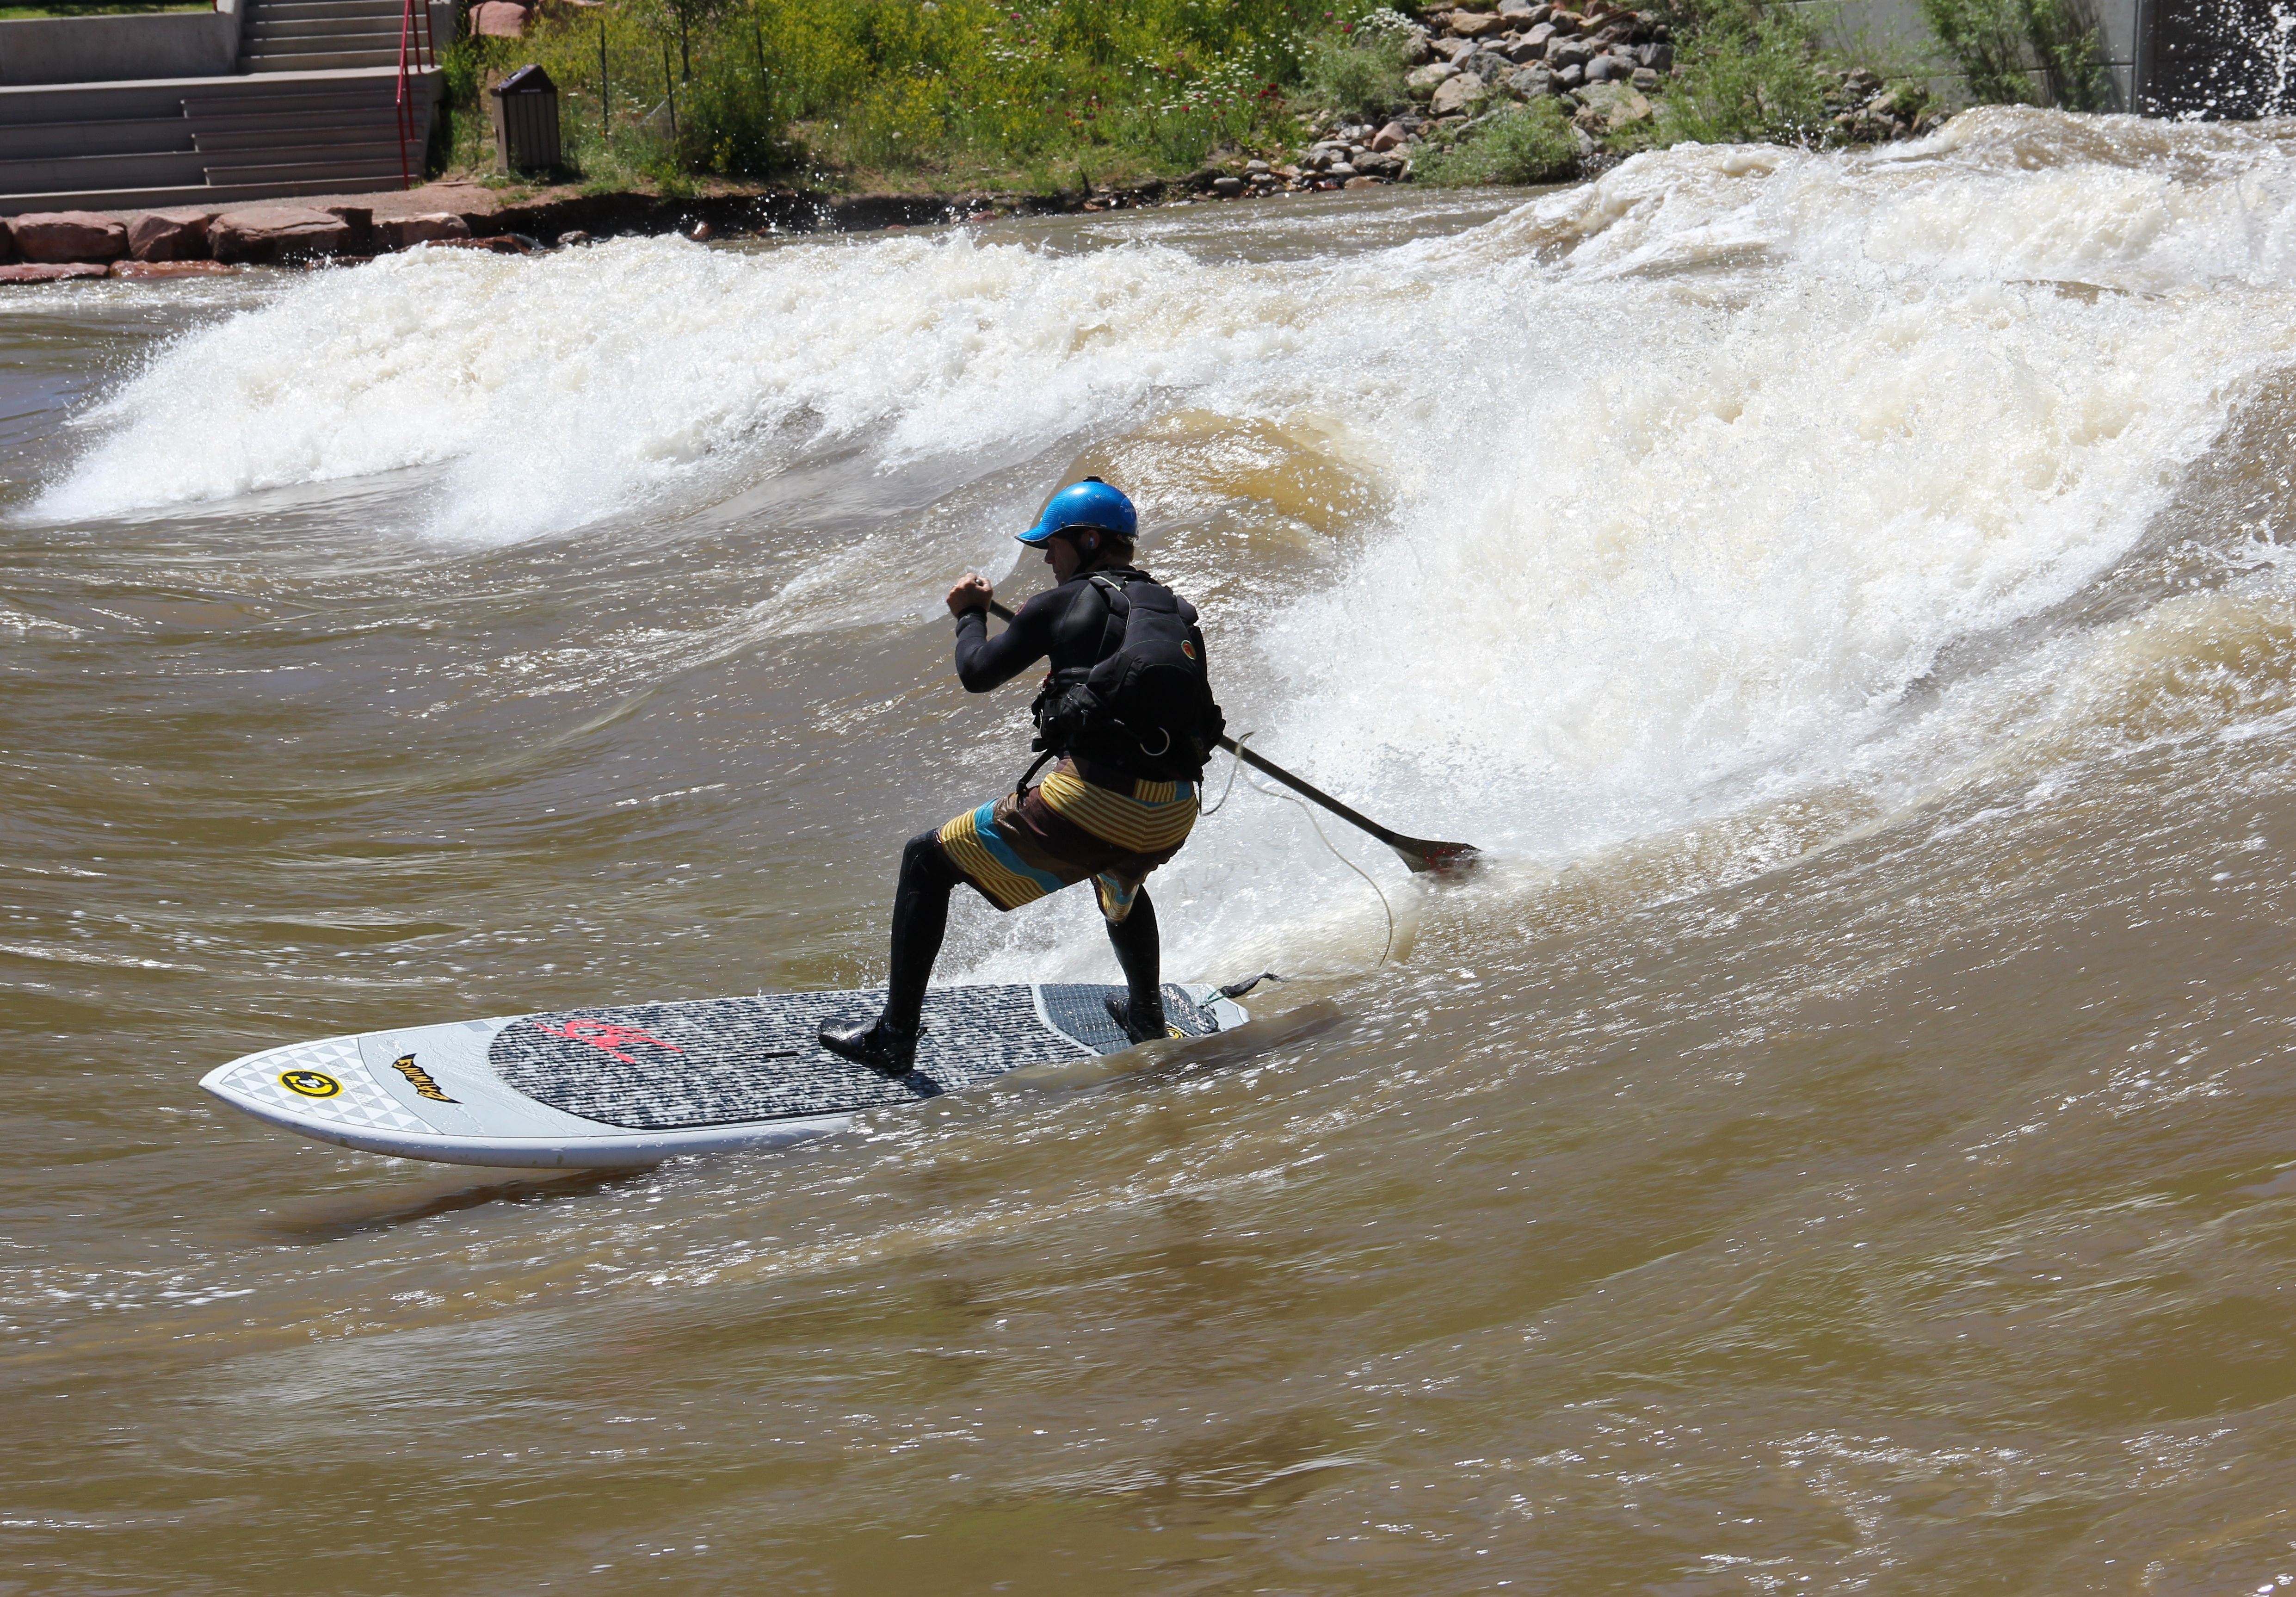 Droping in at the Whitewater Park